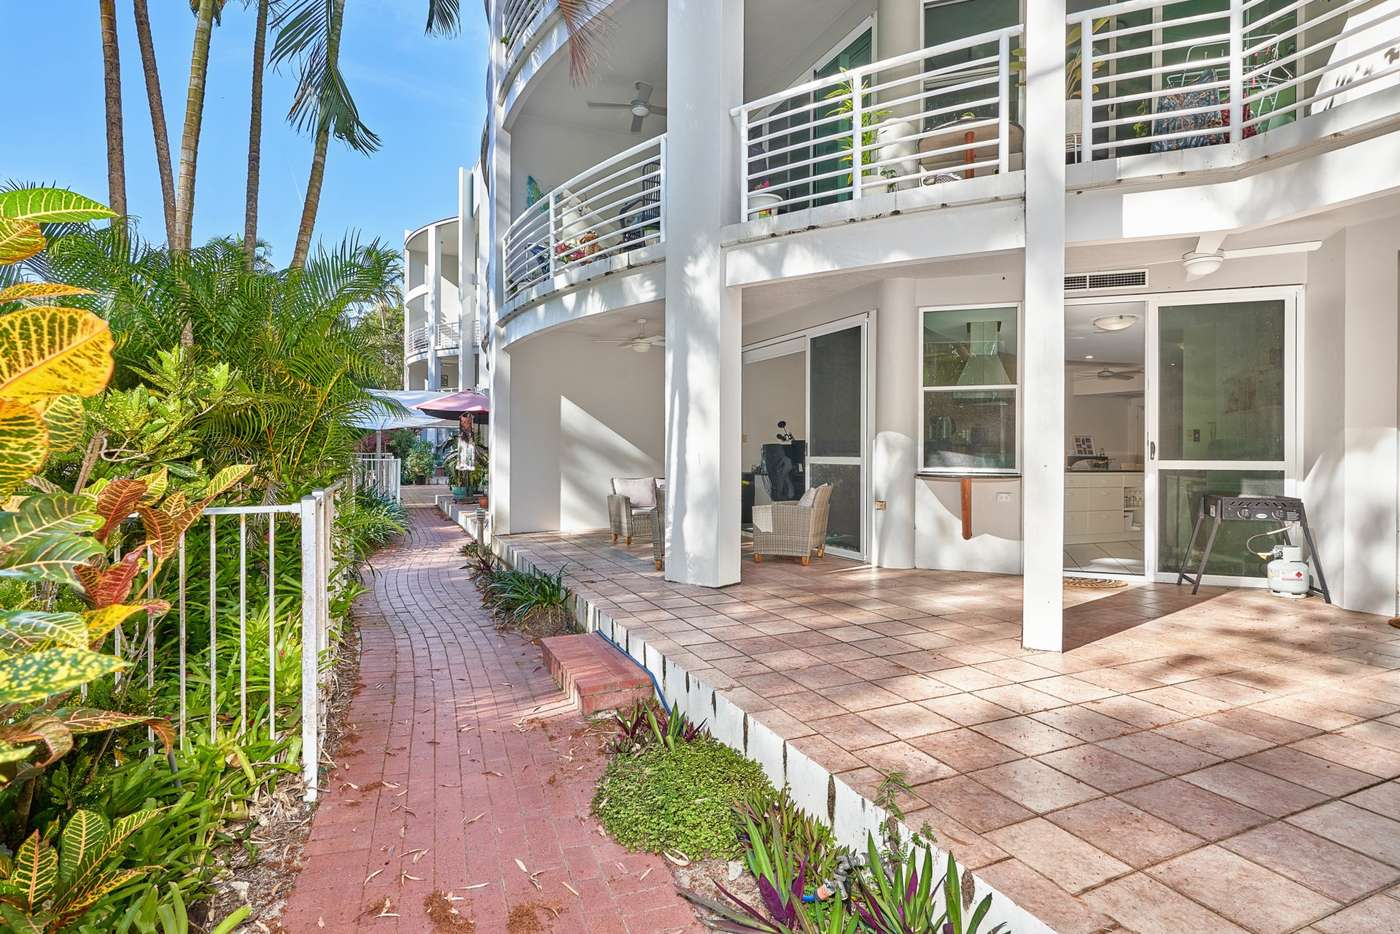 Main view of Homely apartment listing, 3/2 Deauville Close, Yorkeys Knob QLD 4878